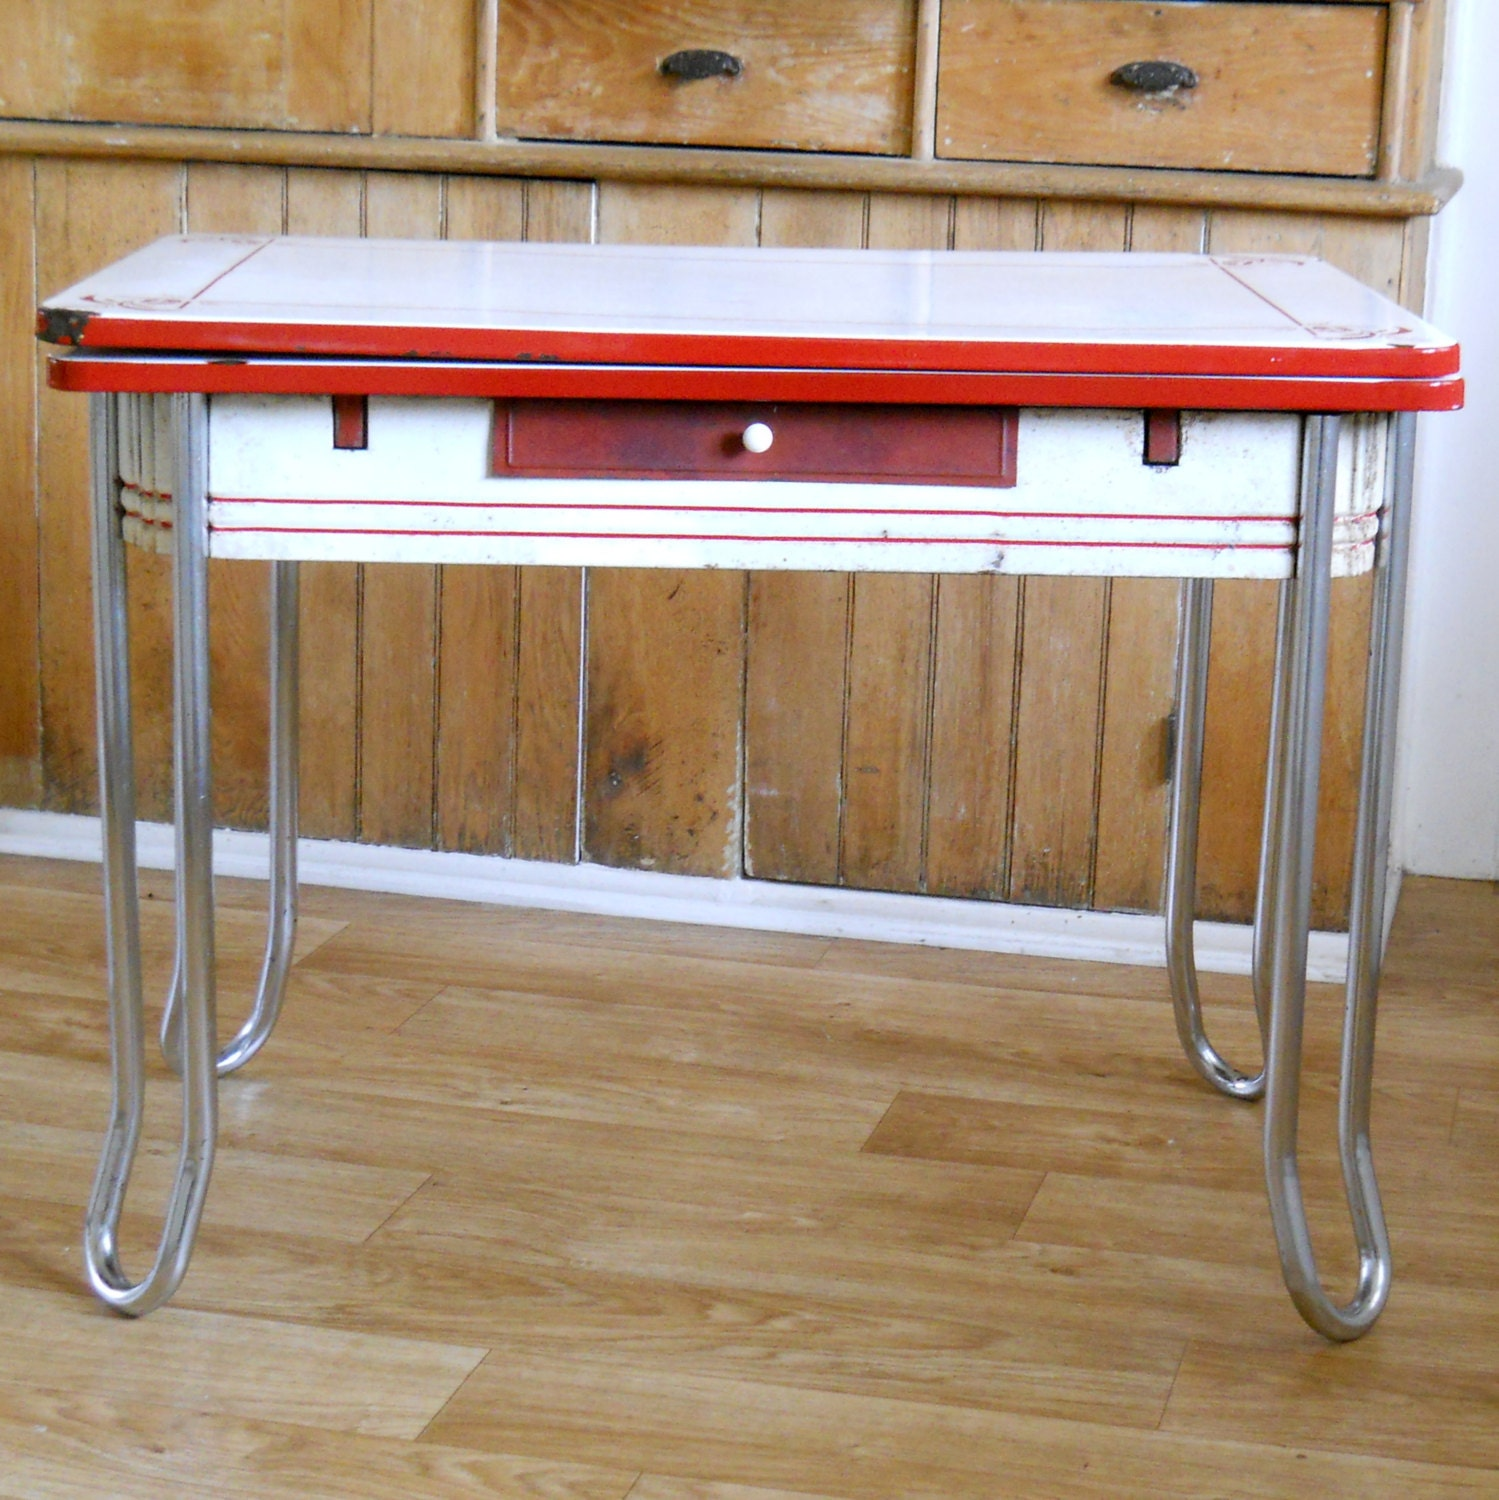 Vintage Chrome Kitchen Table: Kitchen & Dining